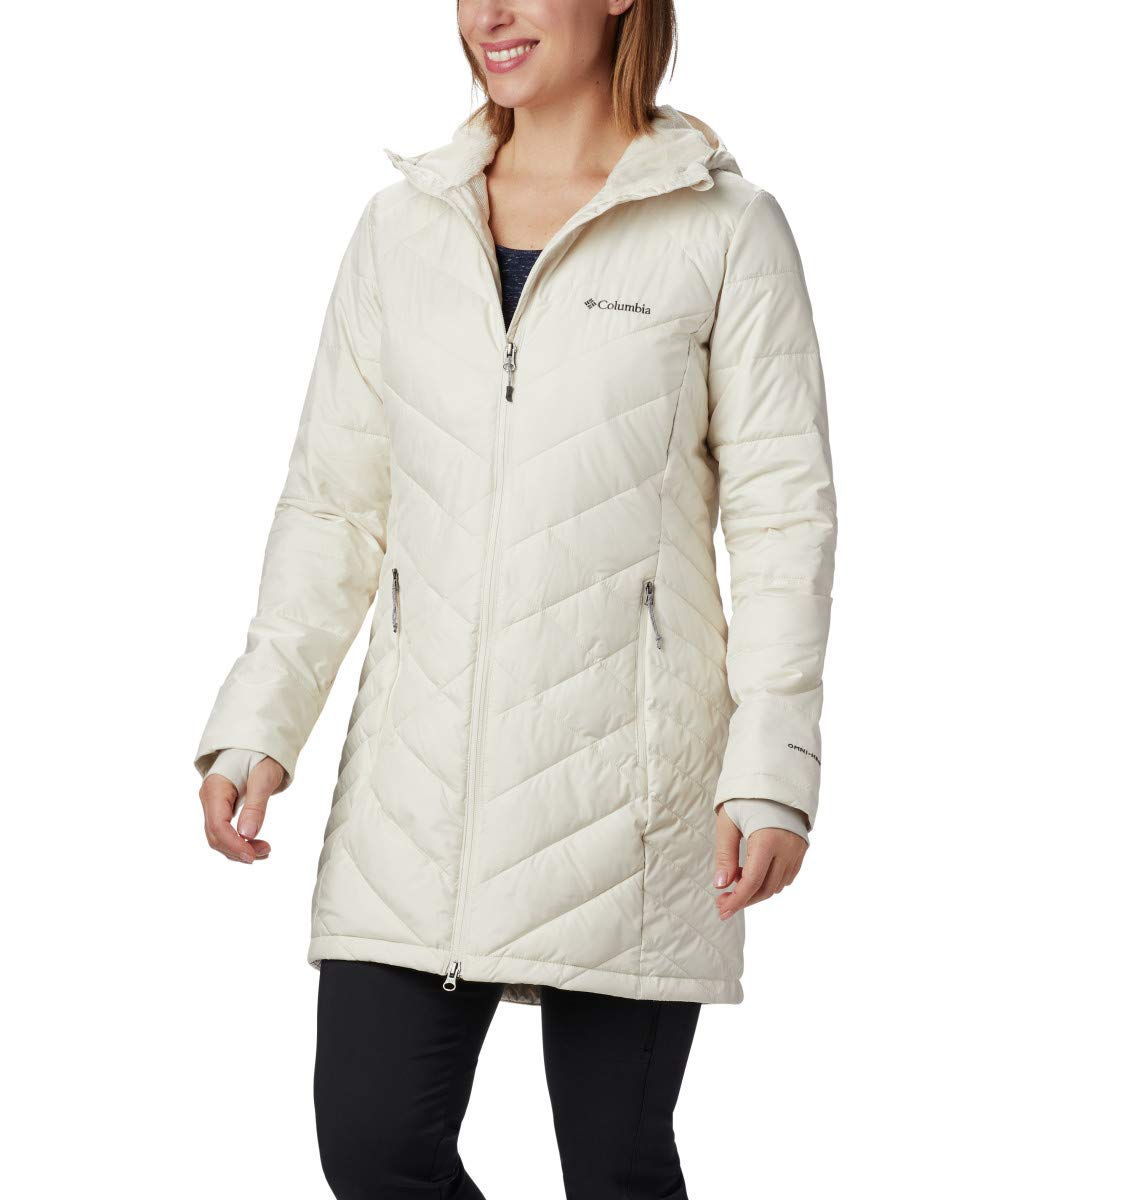 Columbia Women's Heavenly Long Hooded Jacket, Chalk, 2X by Columbia